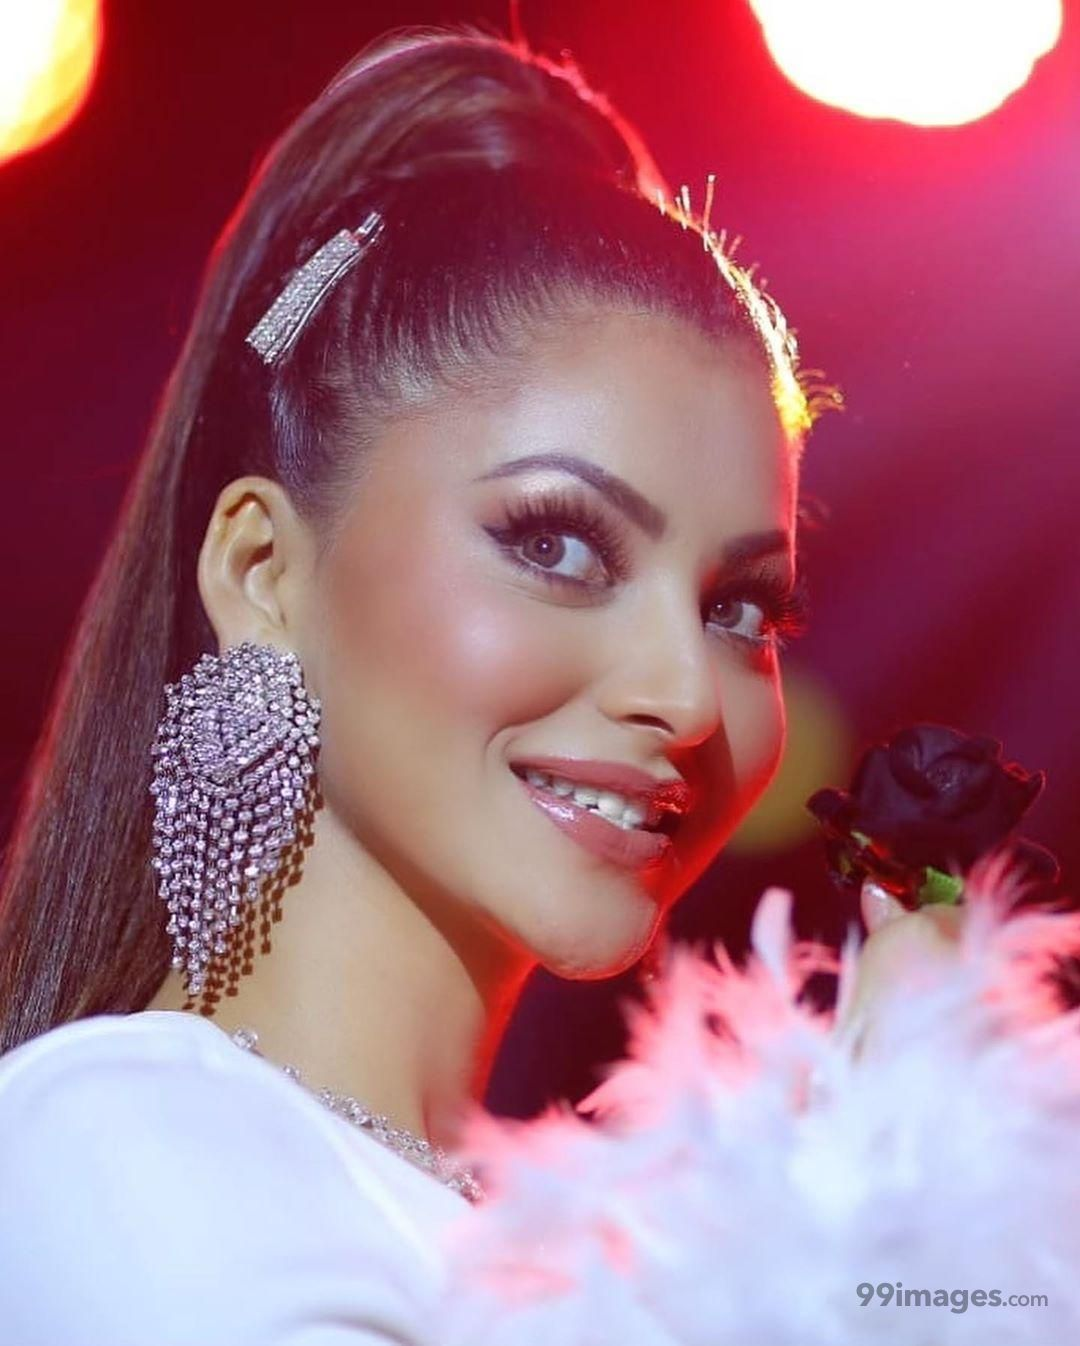 Urvashi Rautela Beautiful Photos & Mobile Wallpapers HD (Android/iPhone) (1080p) (593989) - Urvashi Rautela